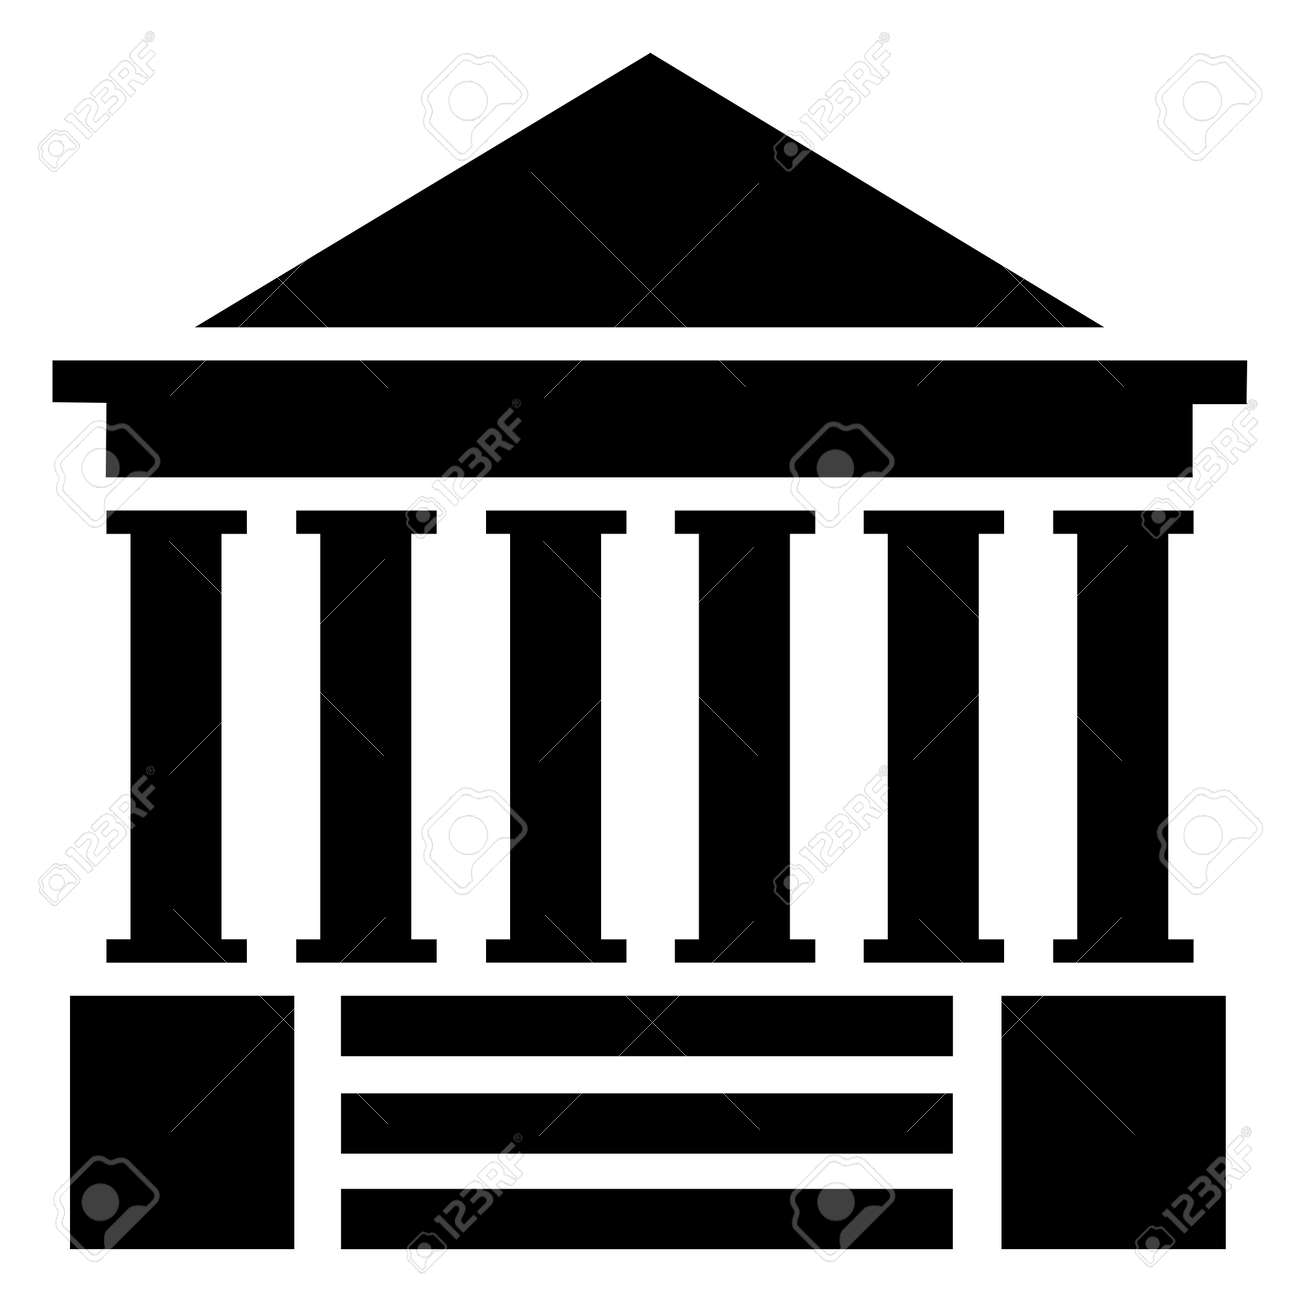 courthouse illustration isolated against white background stock rh 123rf com courthouse clipart courthouse clipart